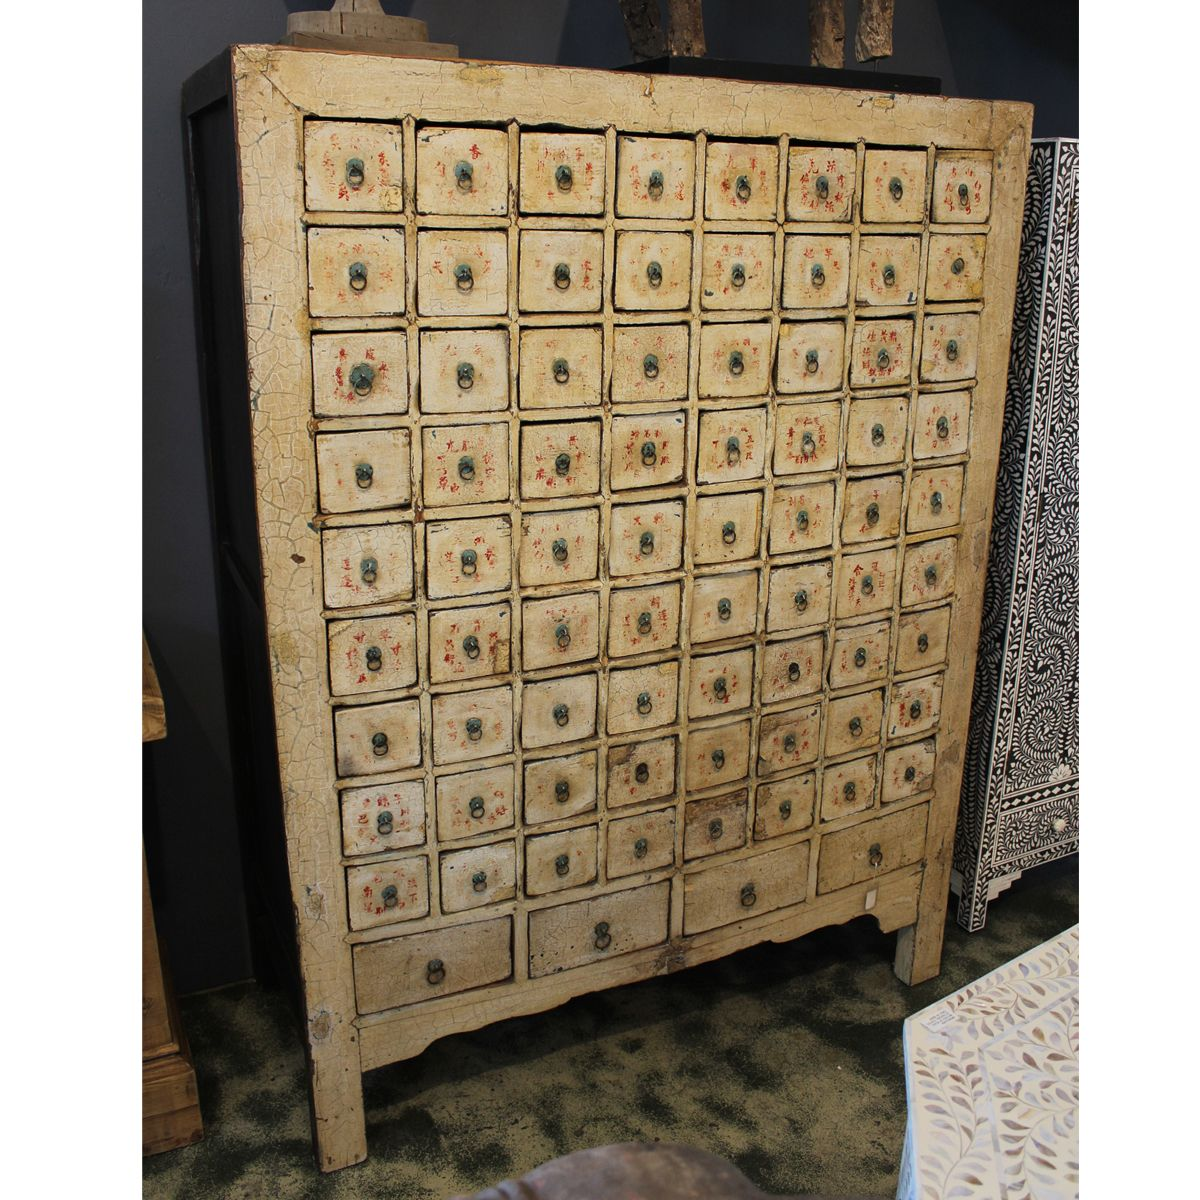 Large Vintage Medicine Apothecary Cabinet. Crackled Cream Finish With  Chinese Content And Herb Descriptions On